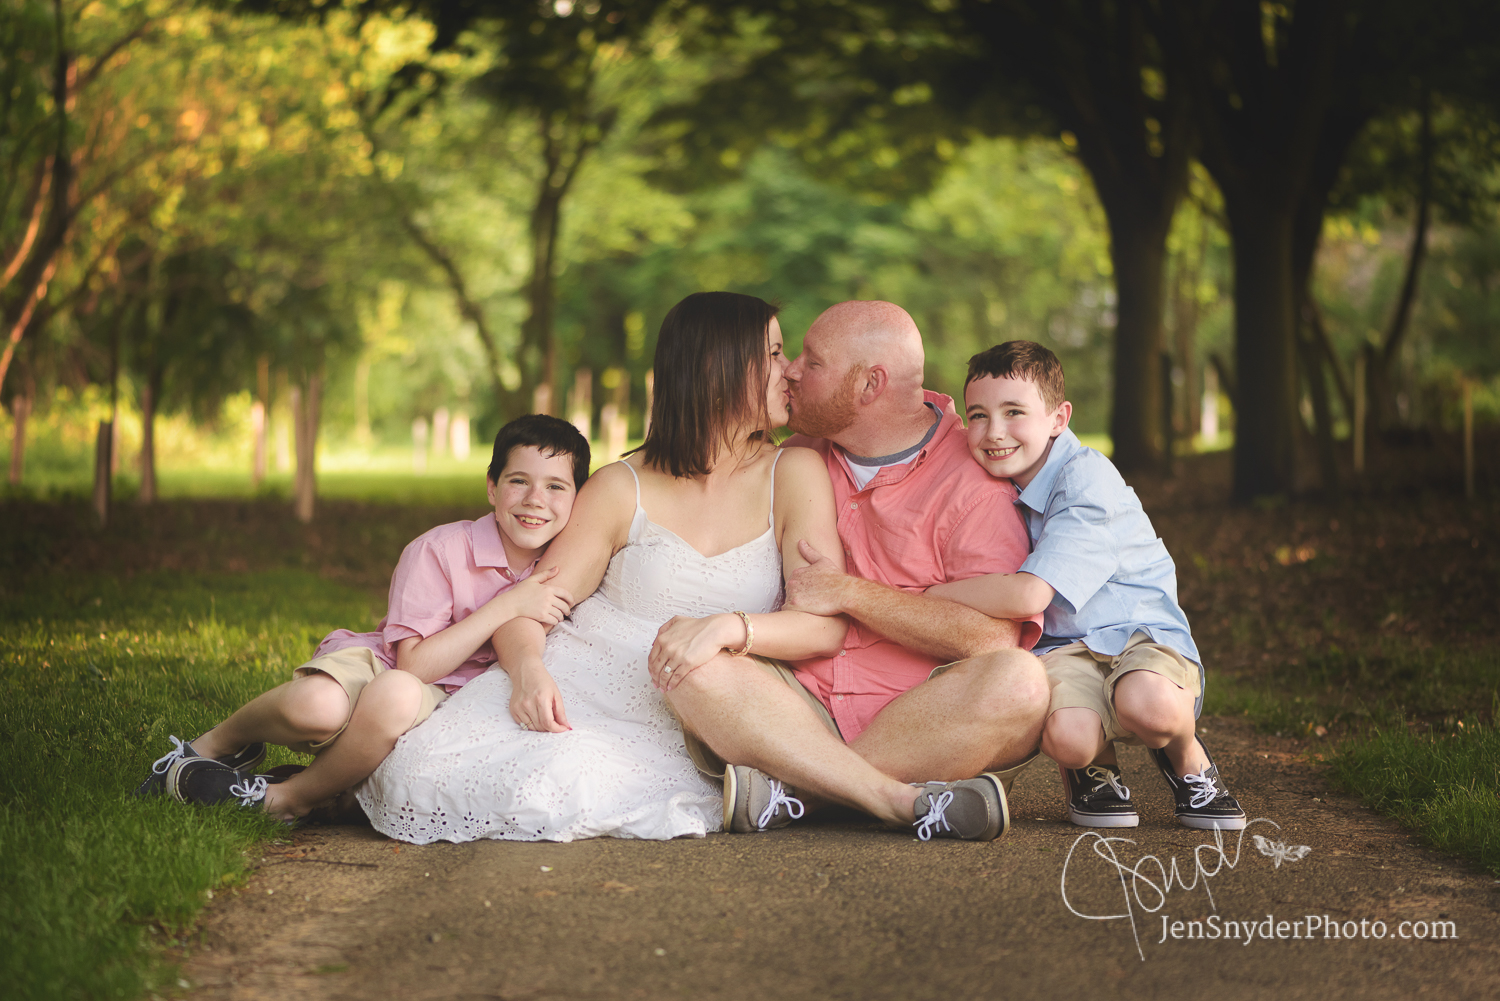 Bel Air, MD family photographer Jen Snyder http://www.jensnyderphoto.com